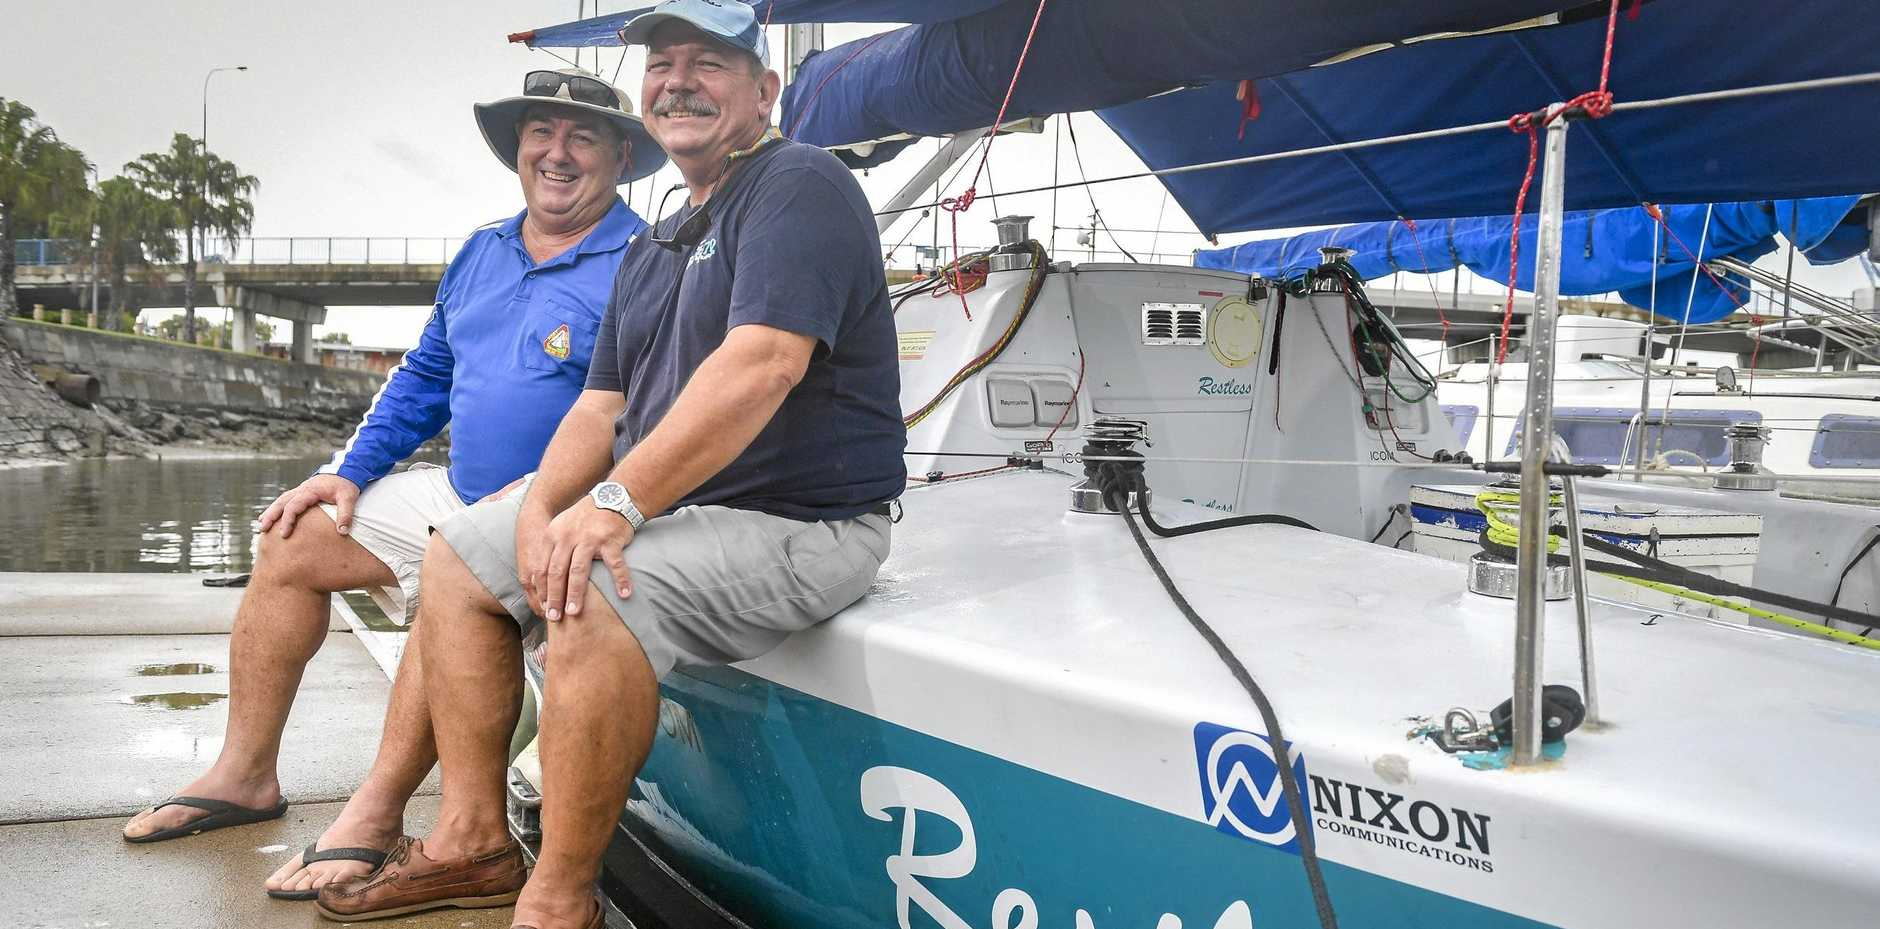 Skipper John Ibell and navigator Paul Janson from Restless which will compete in the Brisbane to Gladstone yacht race.